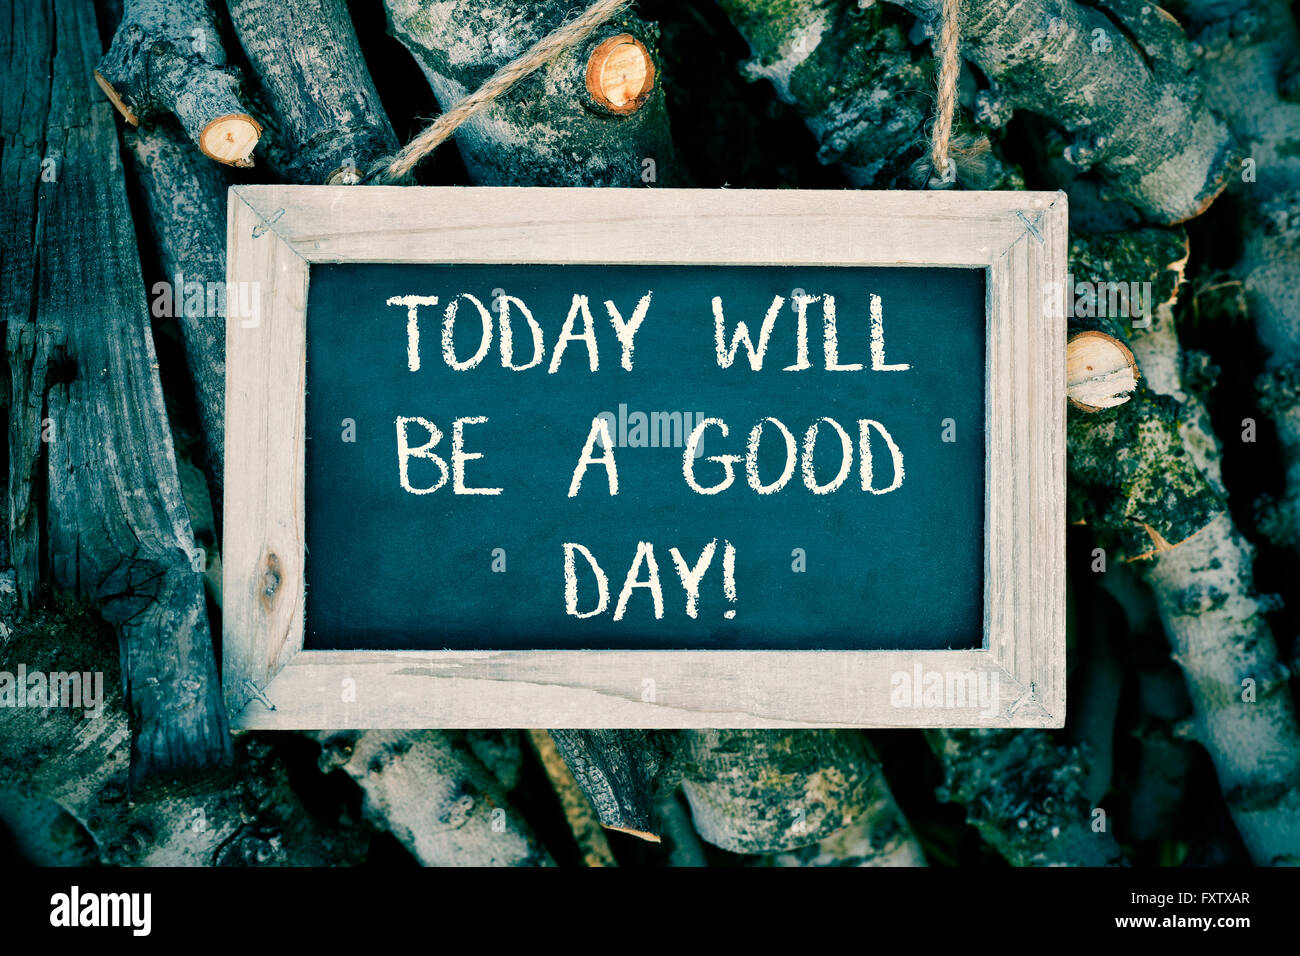 an aged chalkboard with the text today will be a good day placed on a pile of logs - Stock Image